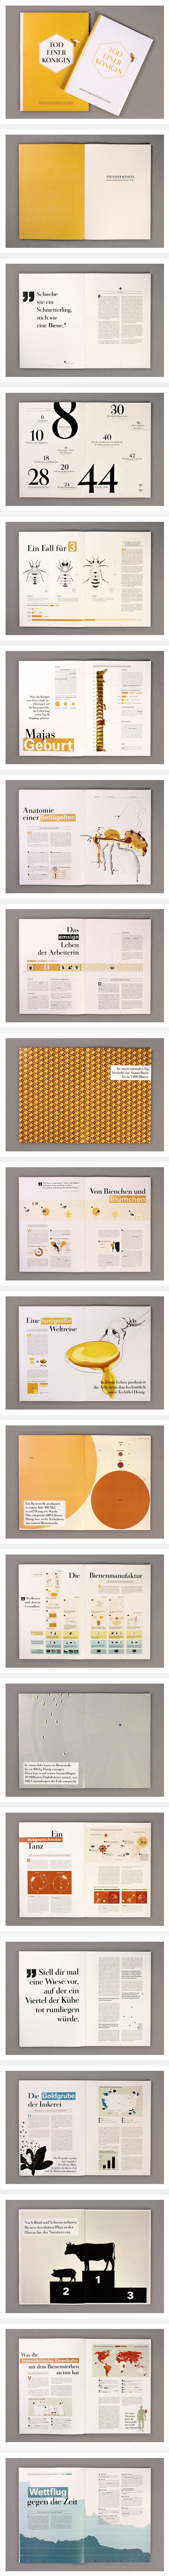 Good inspiration for the annual report project.  Information is displayed in different ways while keeping the whole cohesive.: